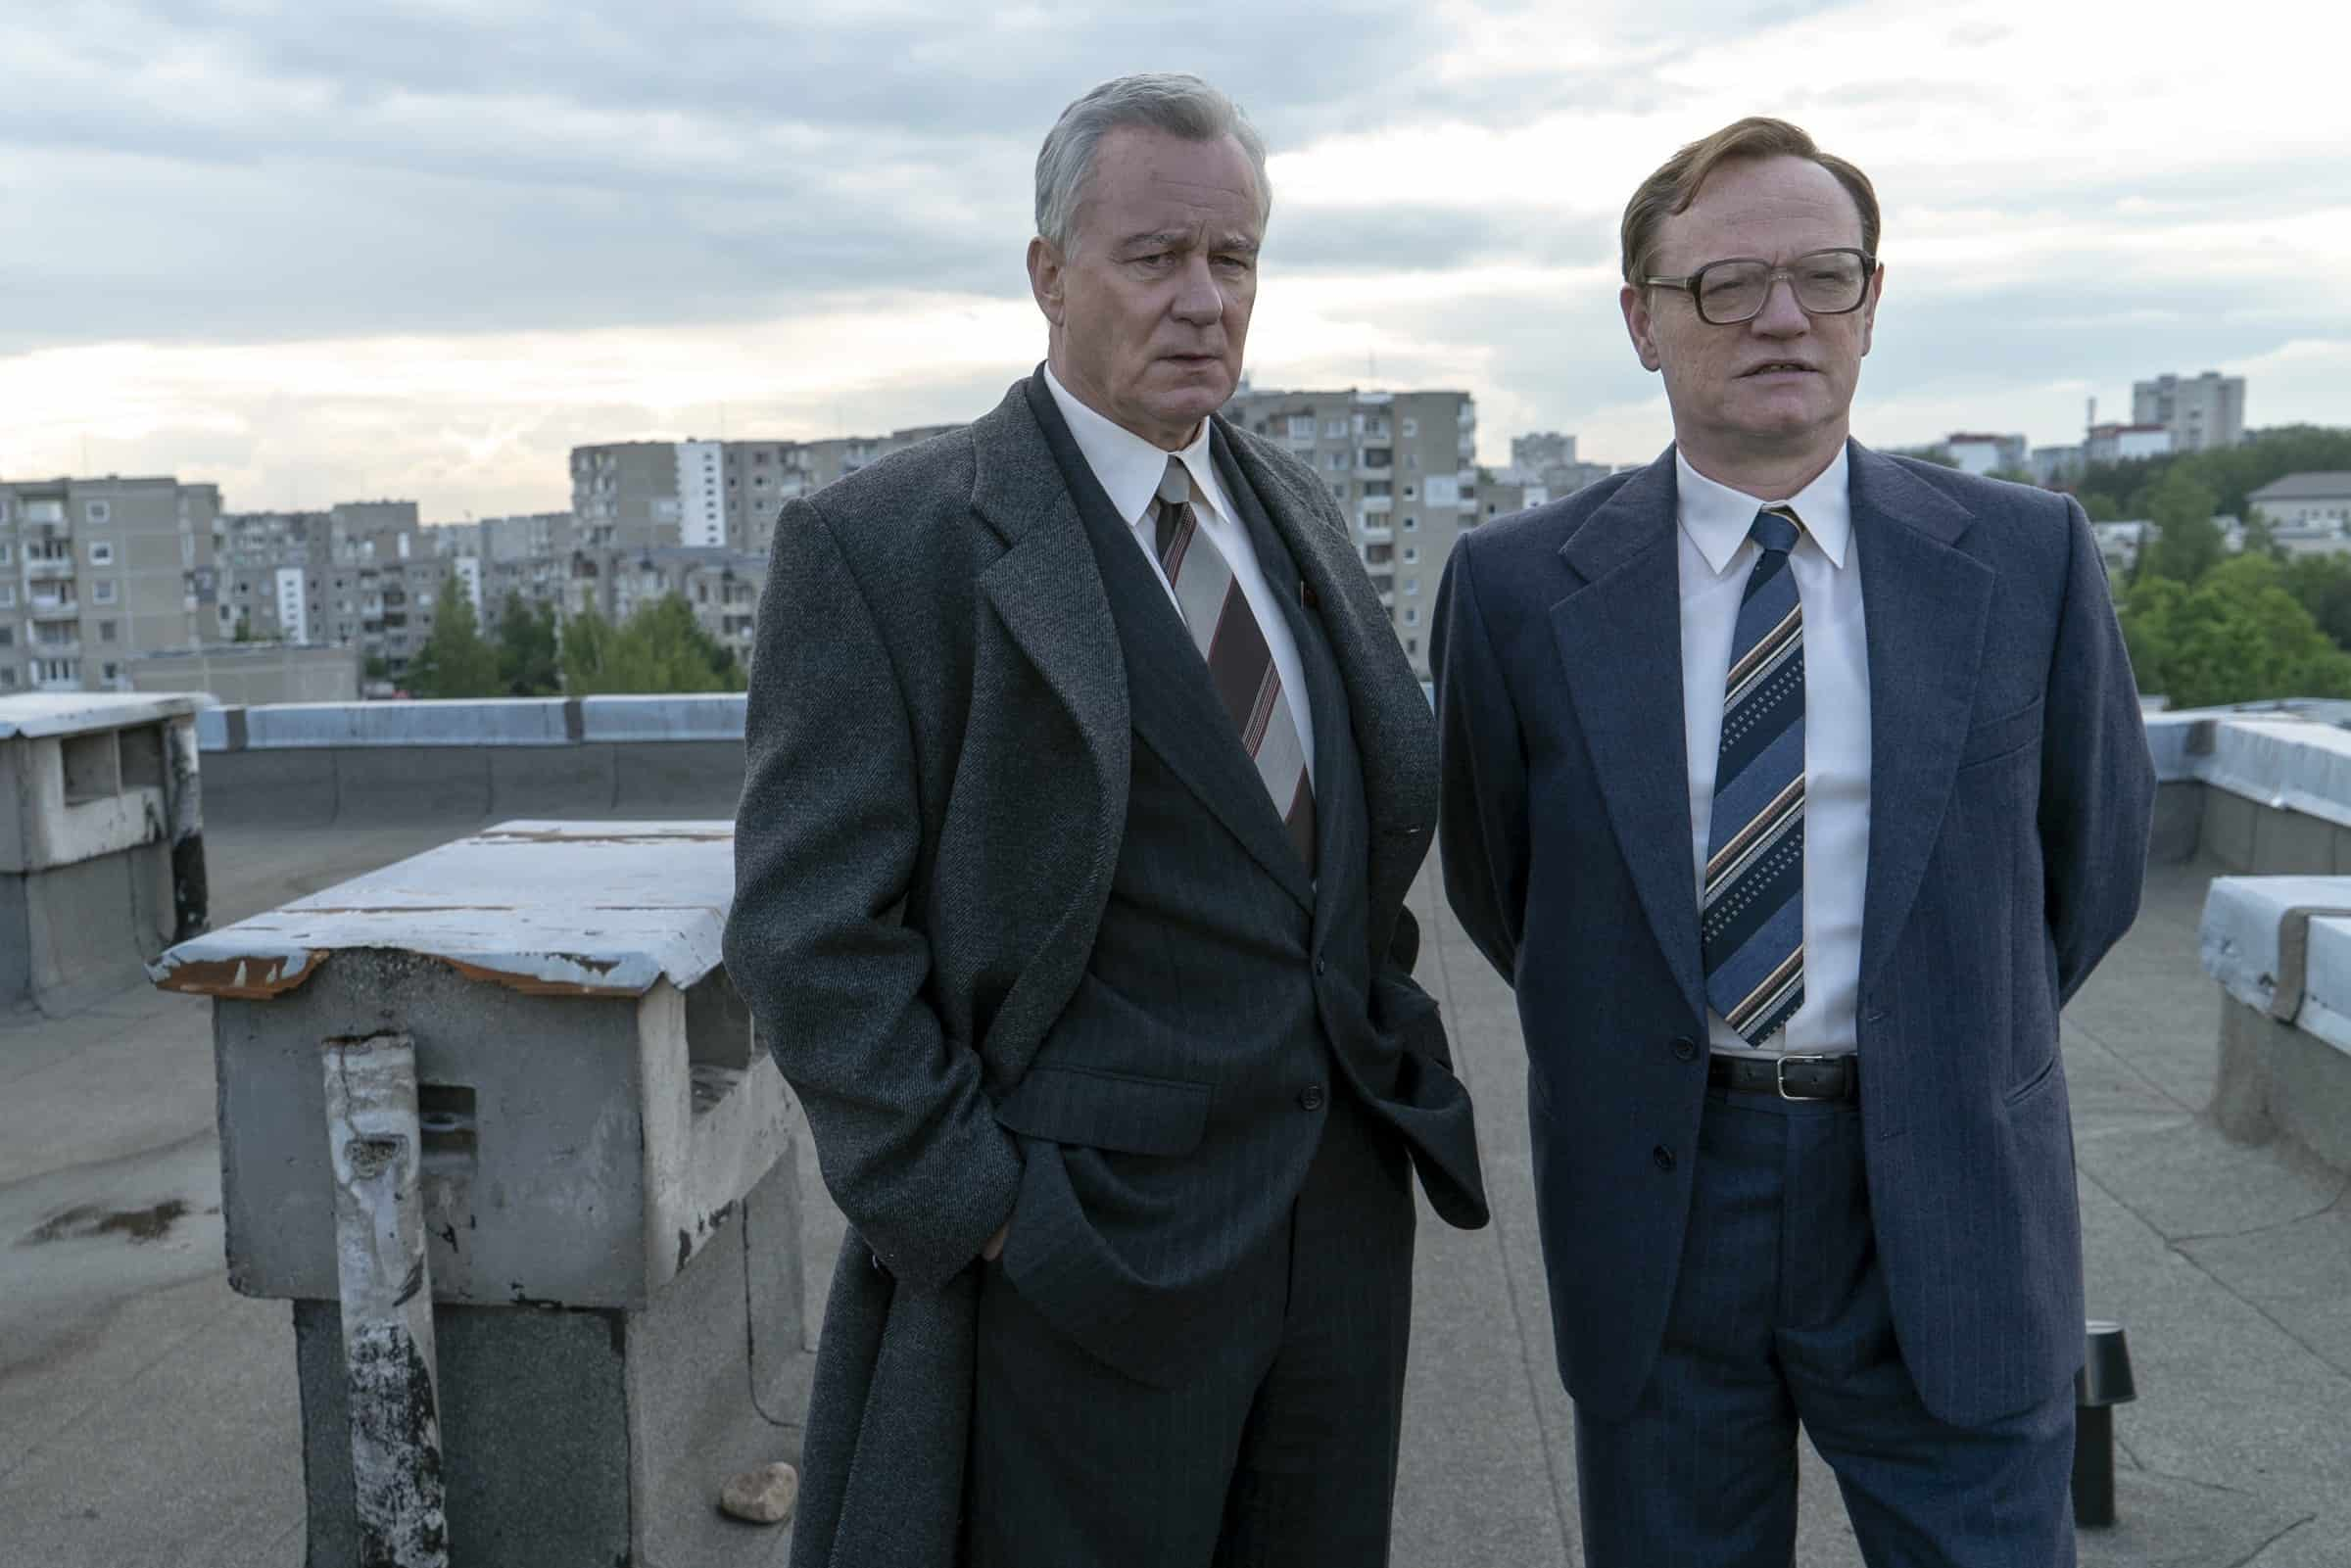 Hit HBO Show Chernobyl lead actors